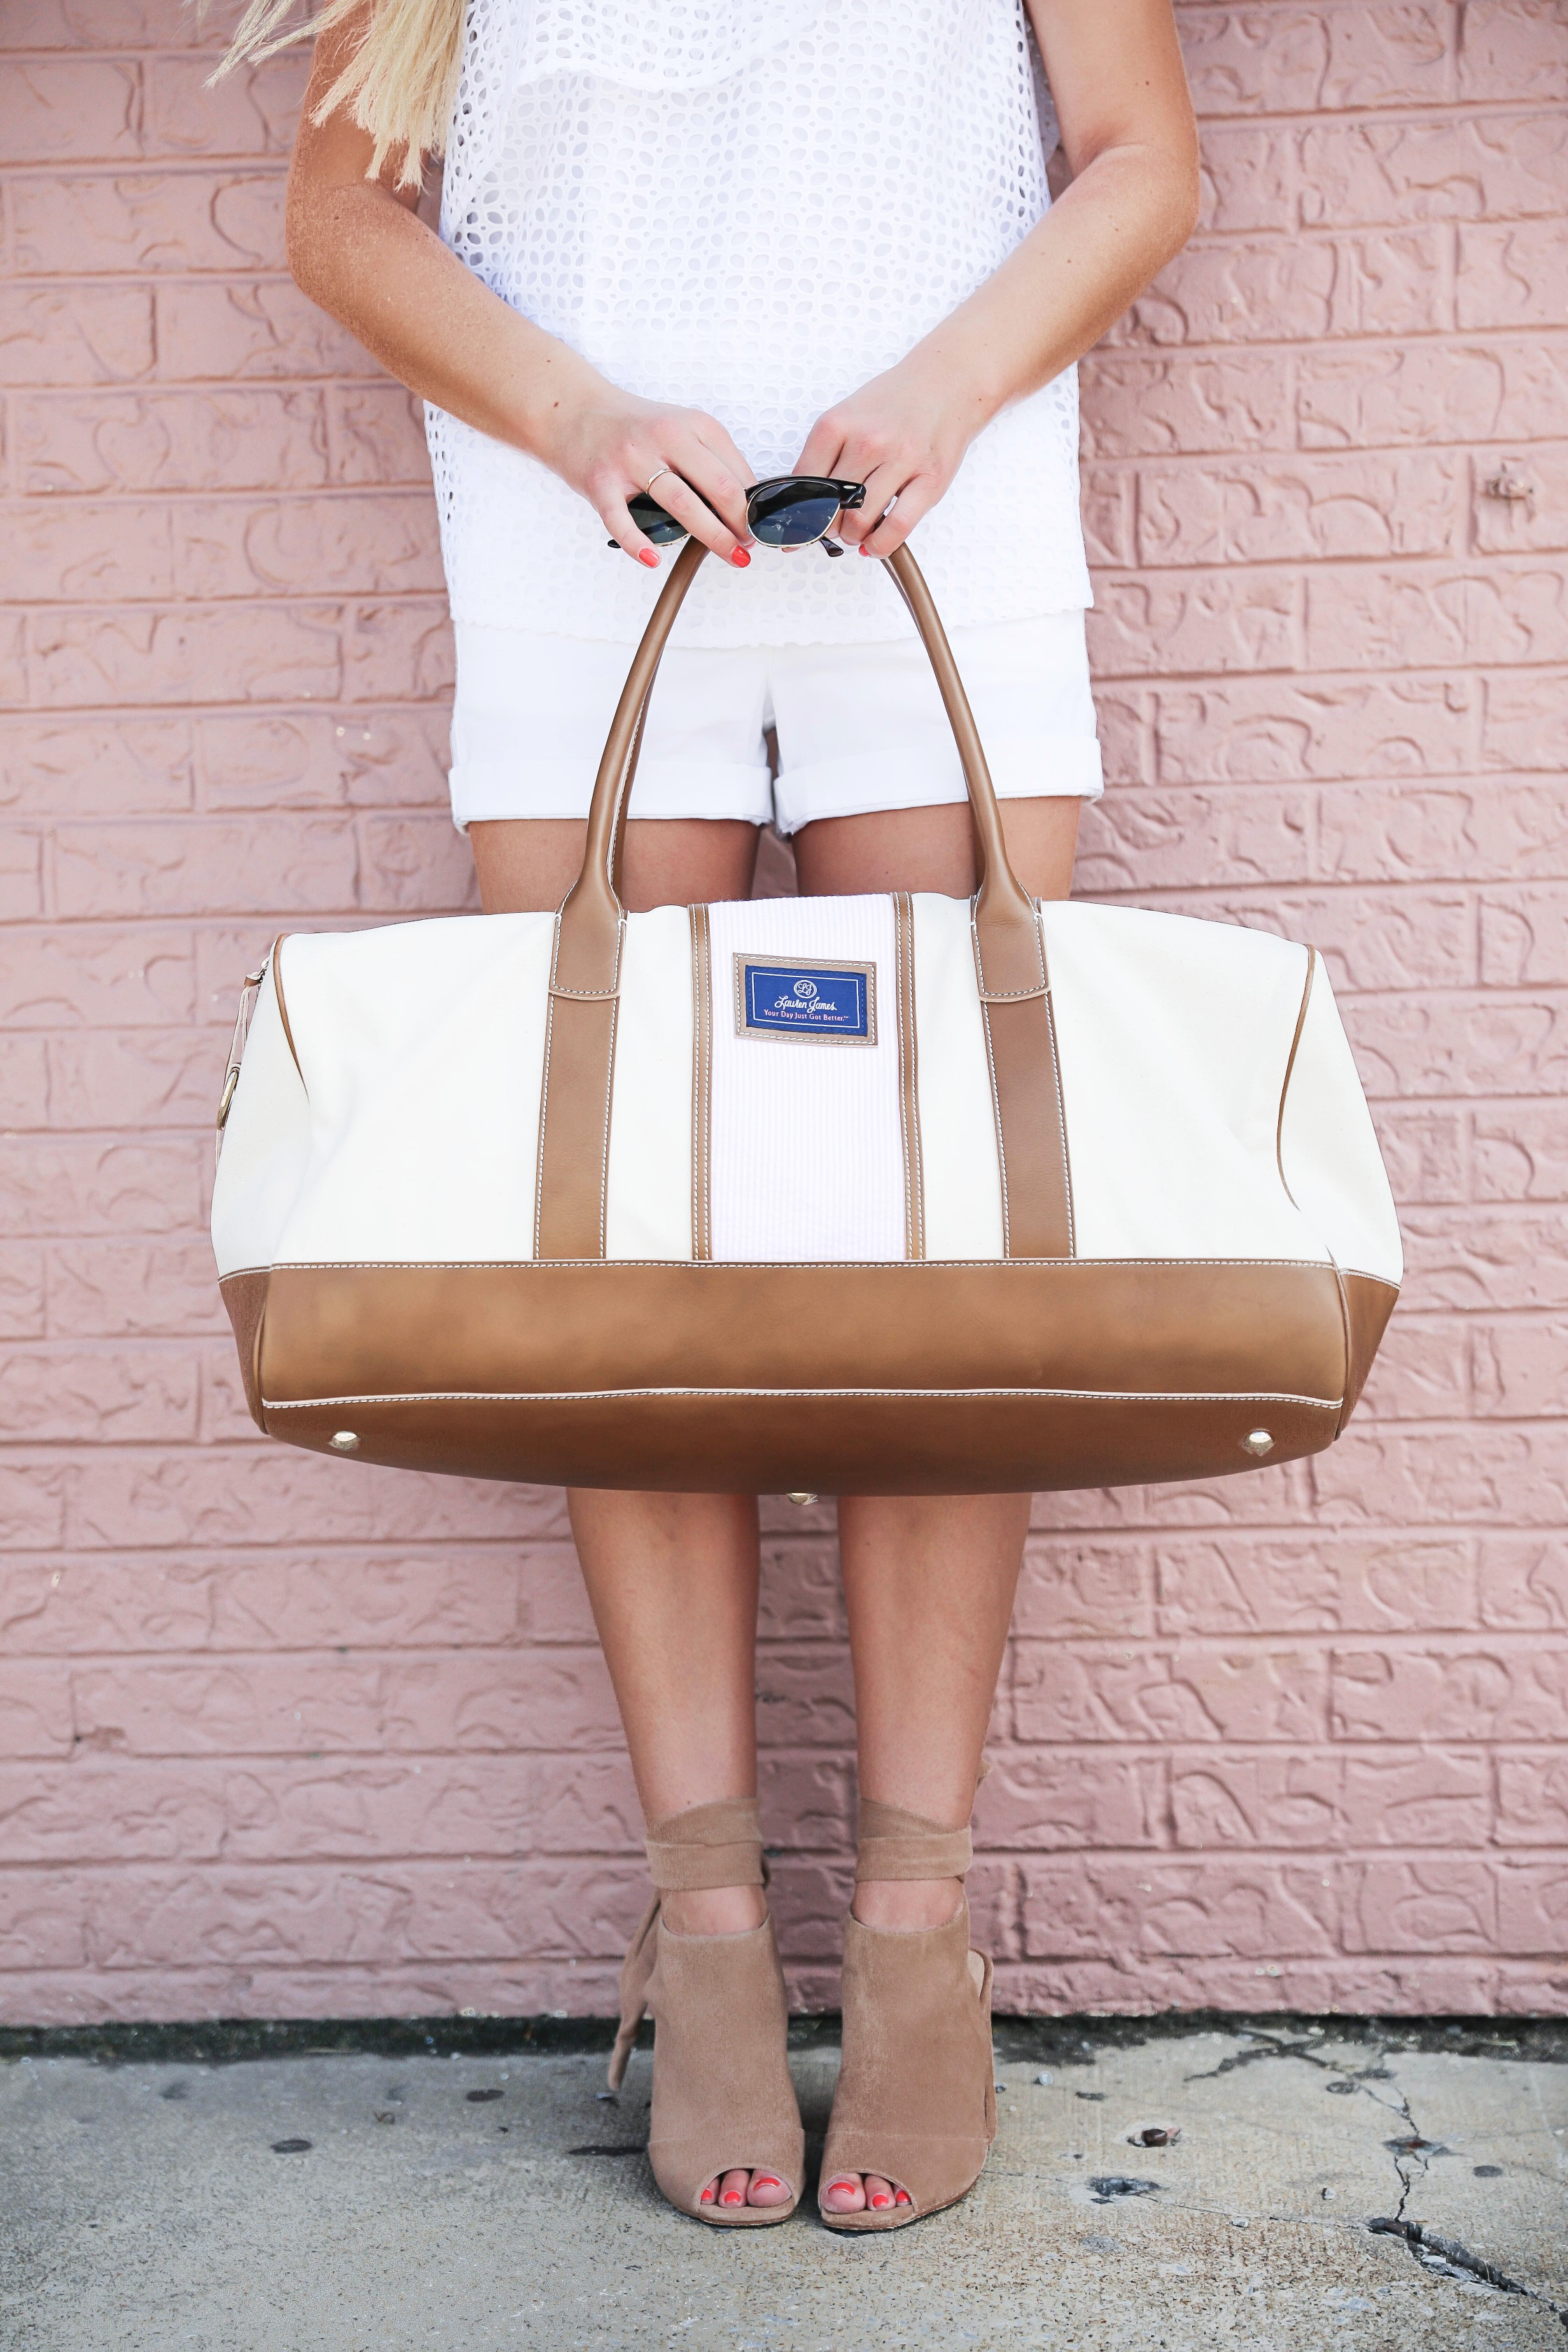 LJ Lauren James pink friday sale! I love this white off the shoulder ruffle top that is on sale! This cute and spacious lauren james duffle bag is also on sale! Details on fashion blog daily dose of charm by lauren lindmark